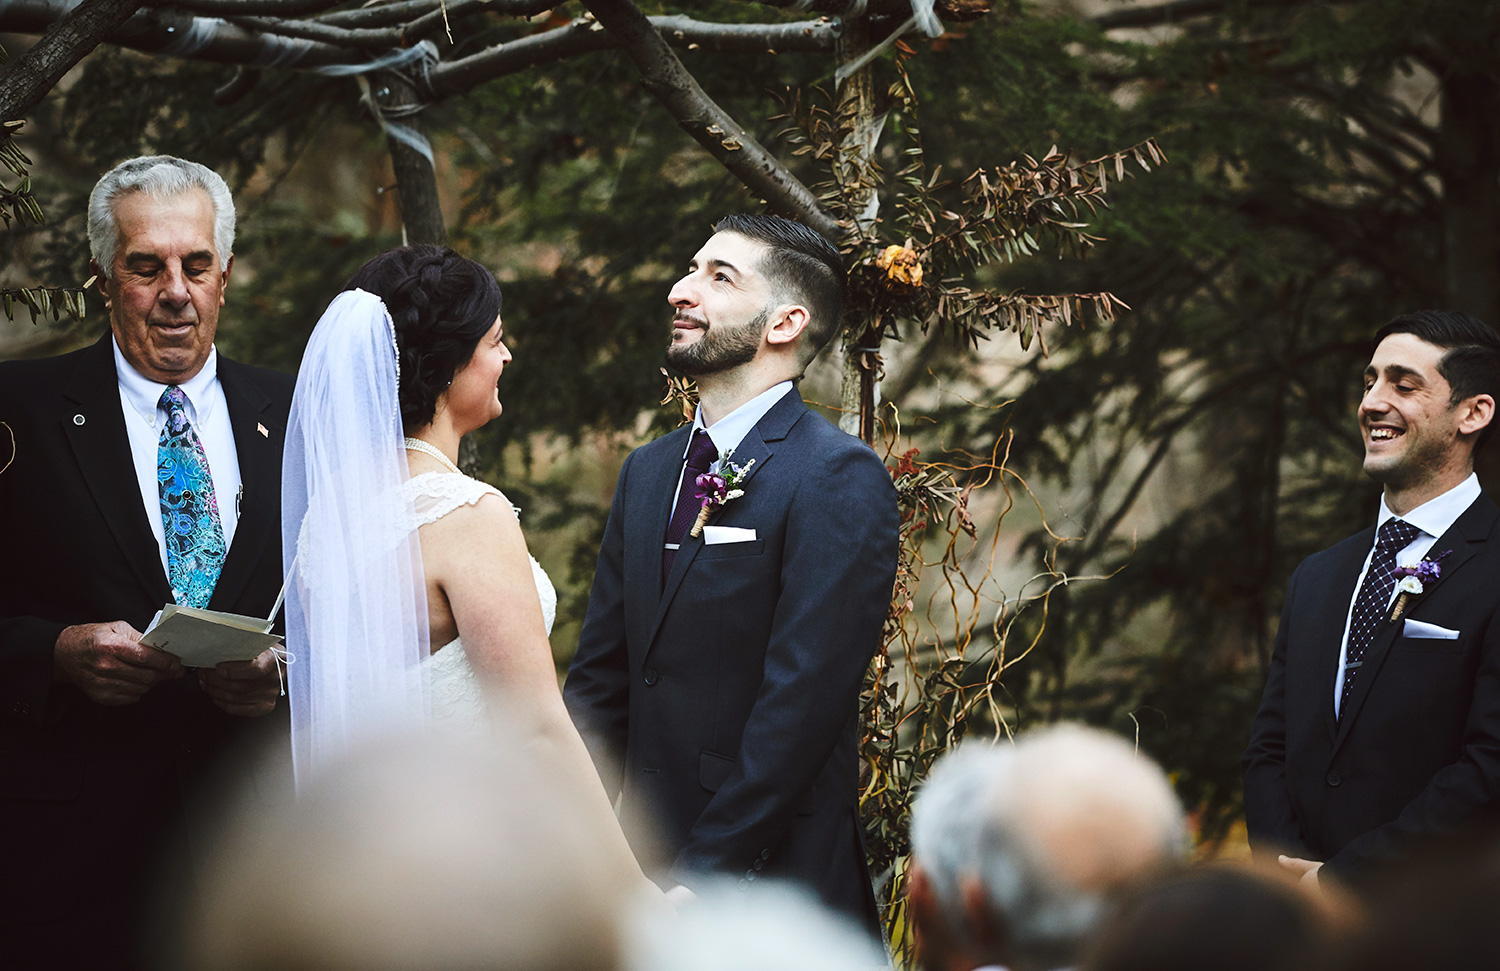 161119_ArrowParkLake&LodgeWedding_By_BriJohnsonWeddings_0108.jpg